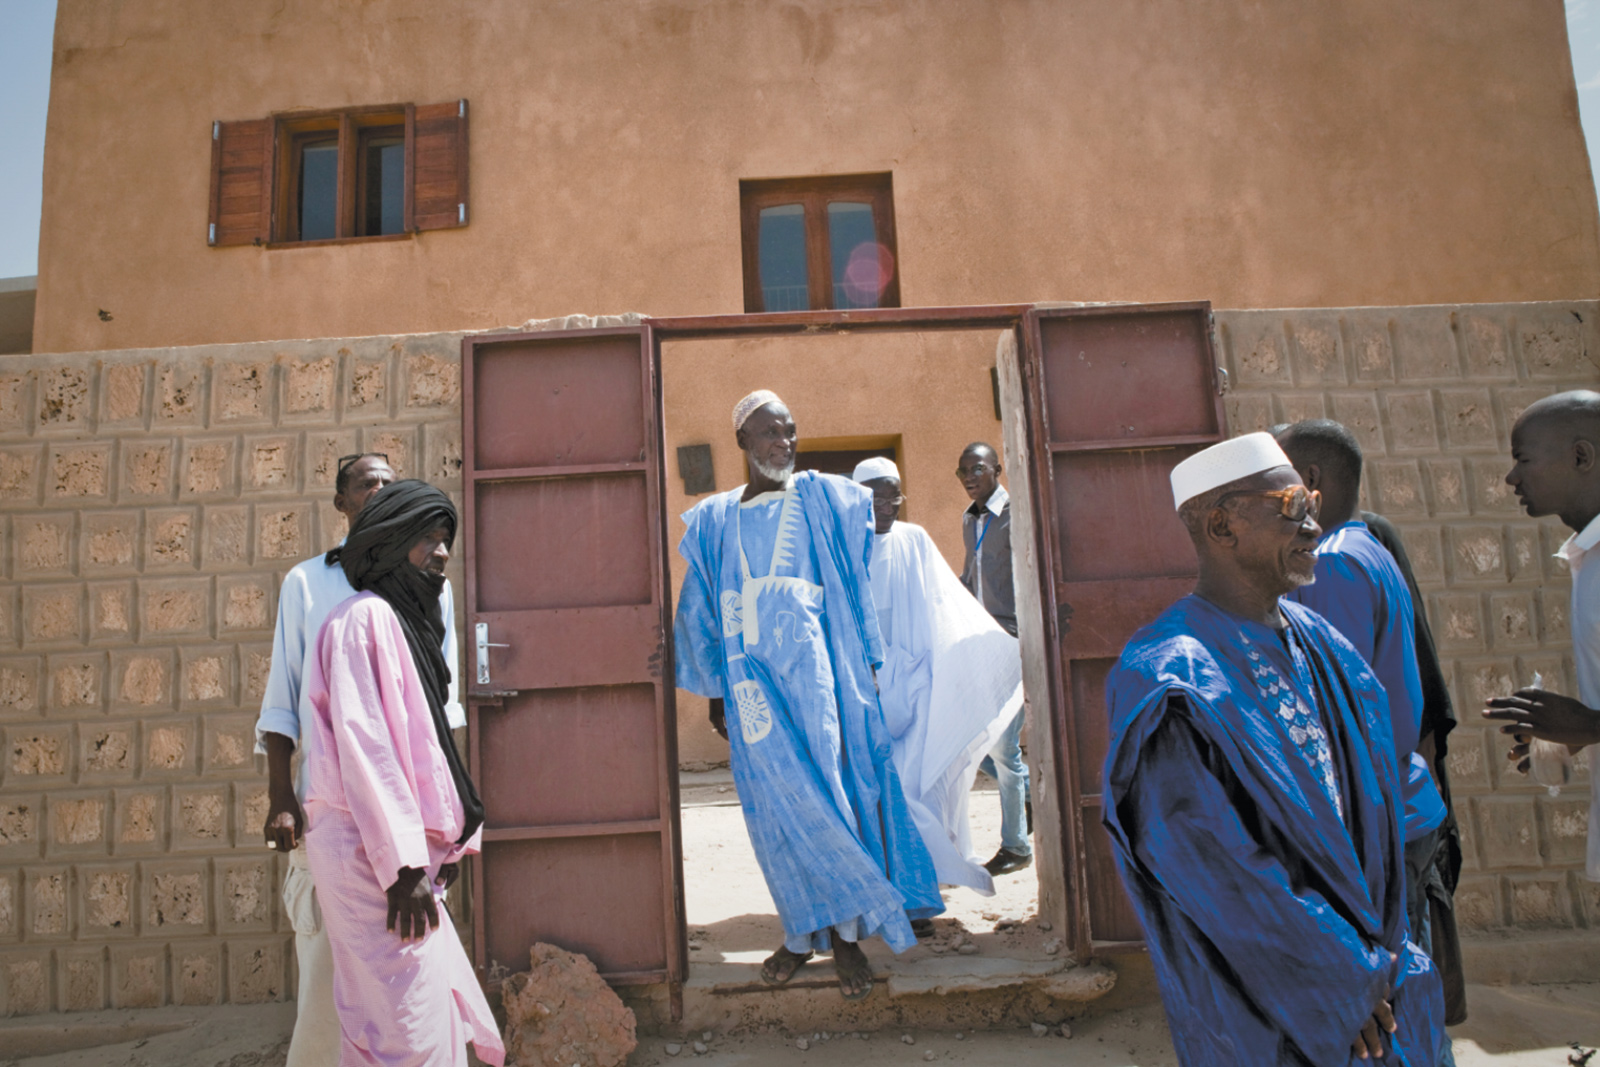 Community leaders leaving a ceremony honoring Timbuktu's Crisis Committee, formed the year before to mediate between the civilian population and the jihadists during the Islamist takeover, October 2013